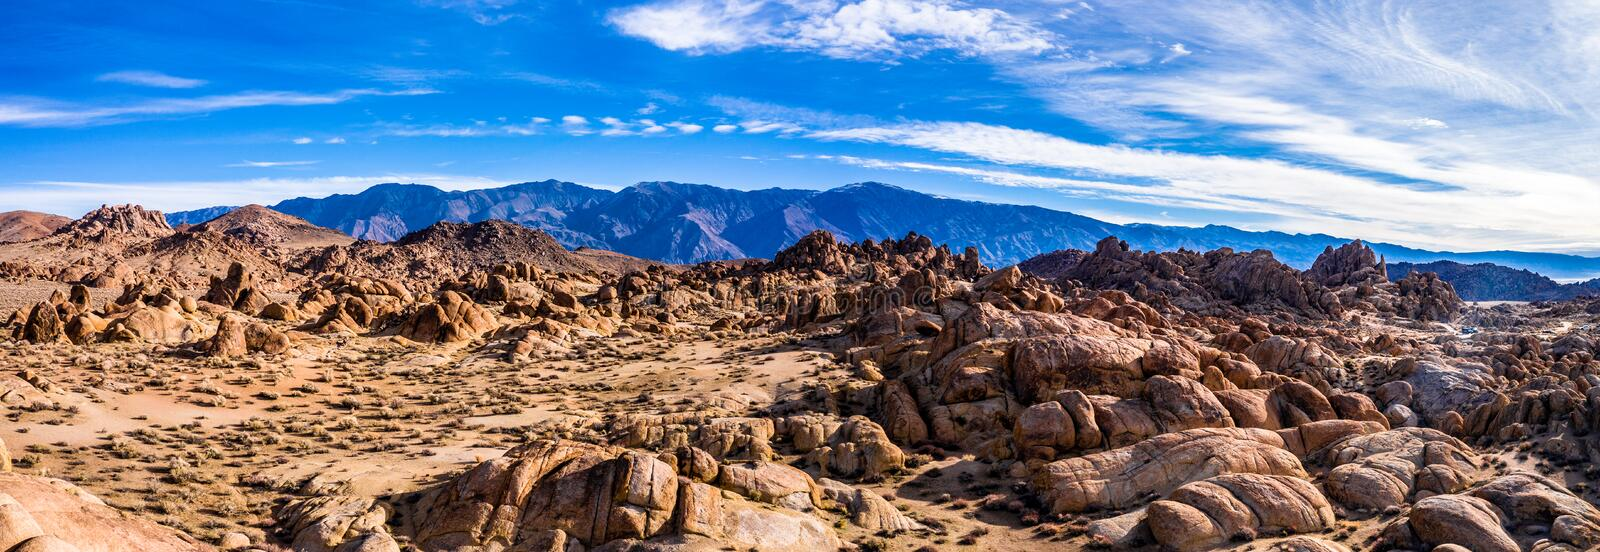 Aerial View of Mt Whitney Lone Pine, CA Eastern Sierra Nevada Alabama Hills. USA royalty free stock images